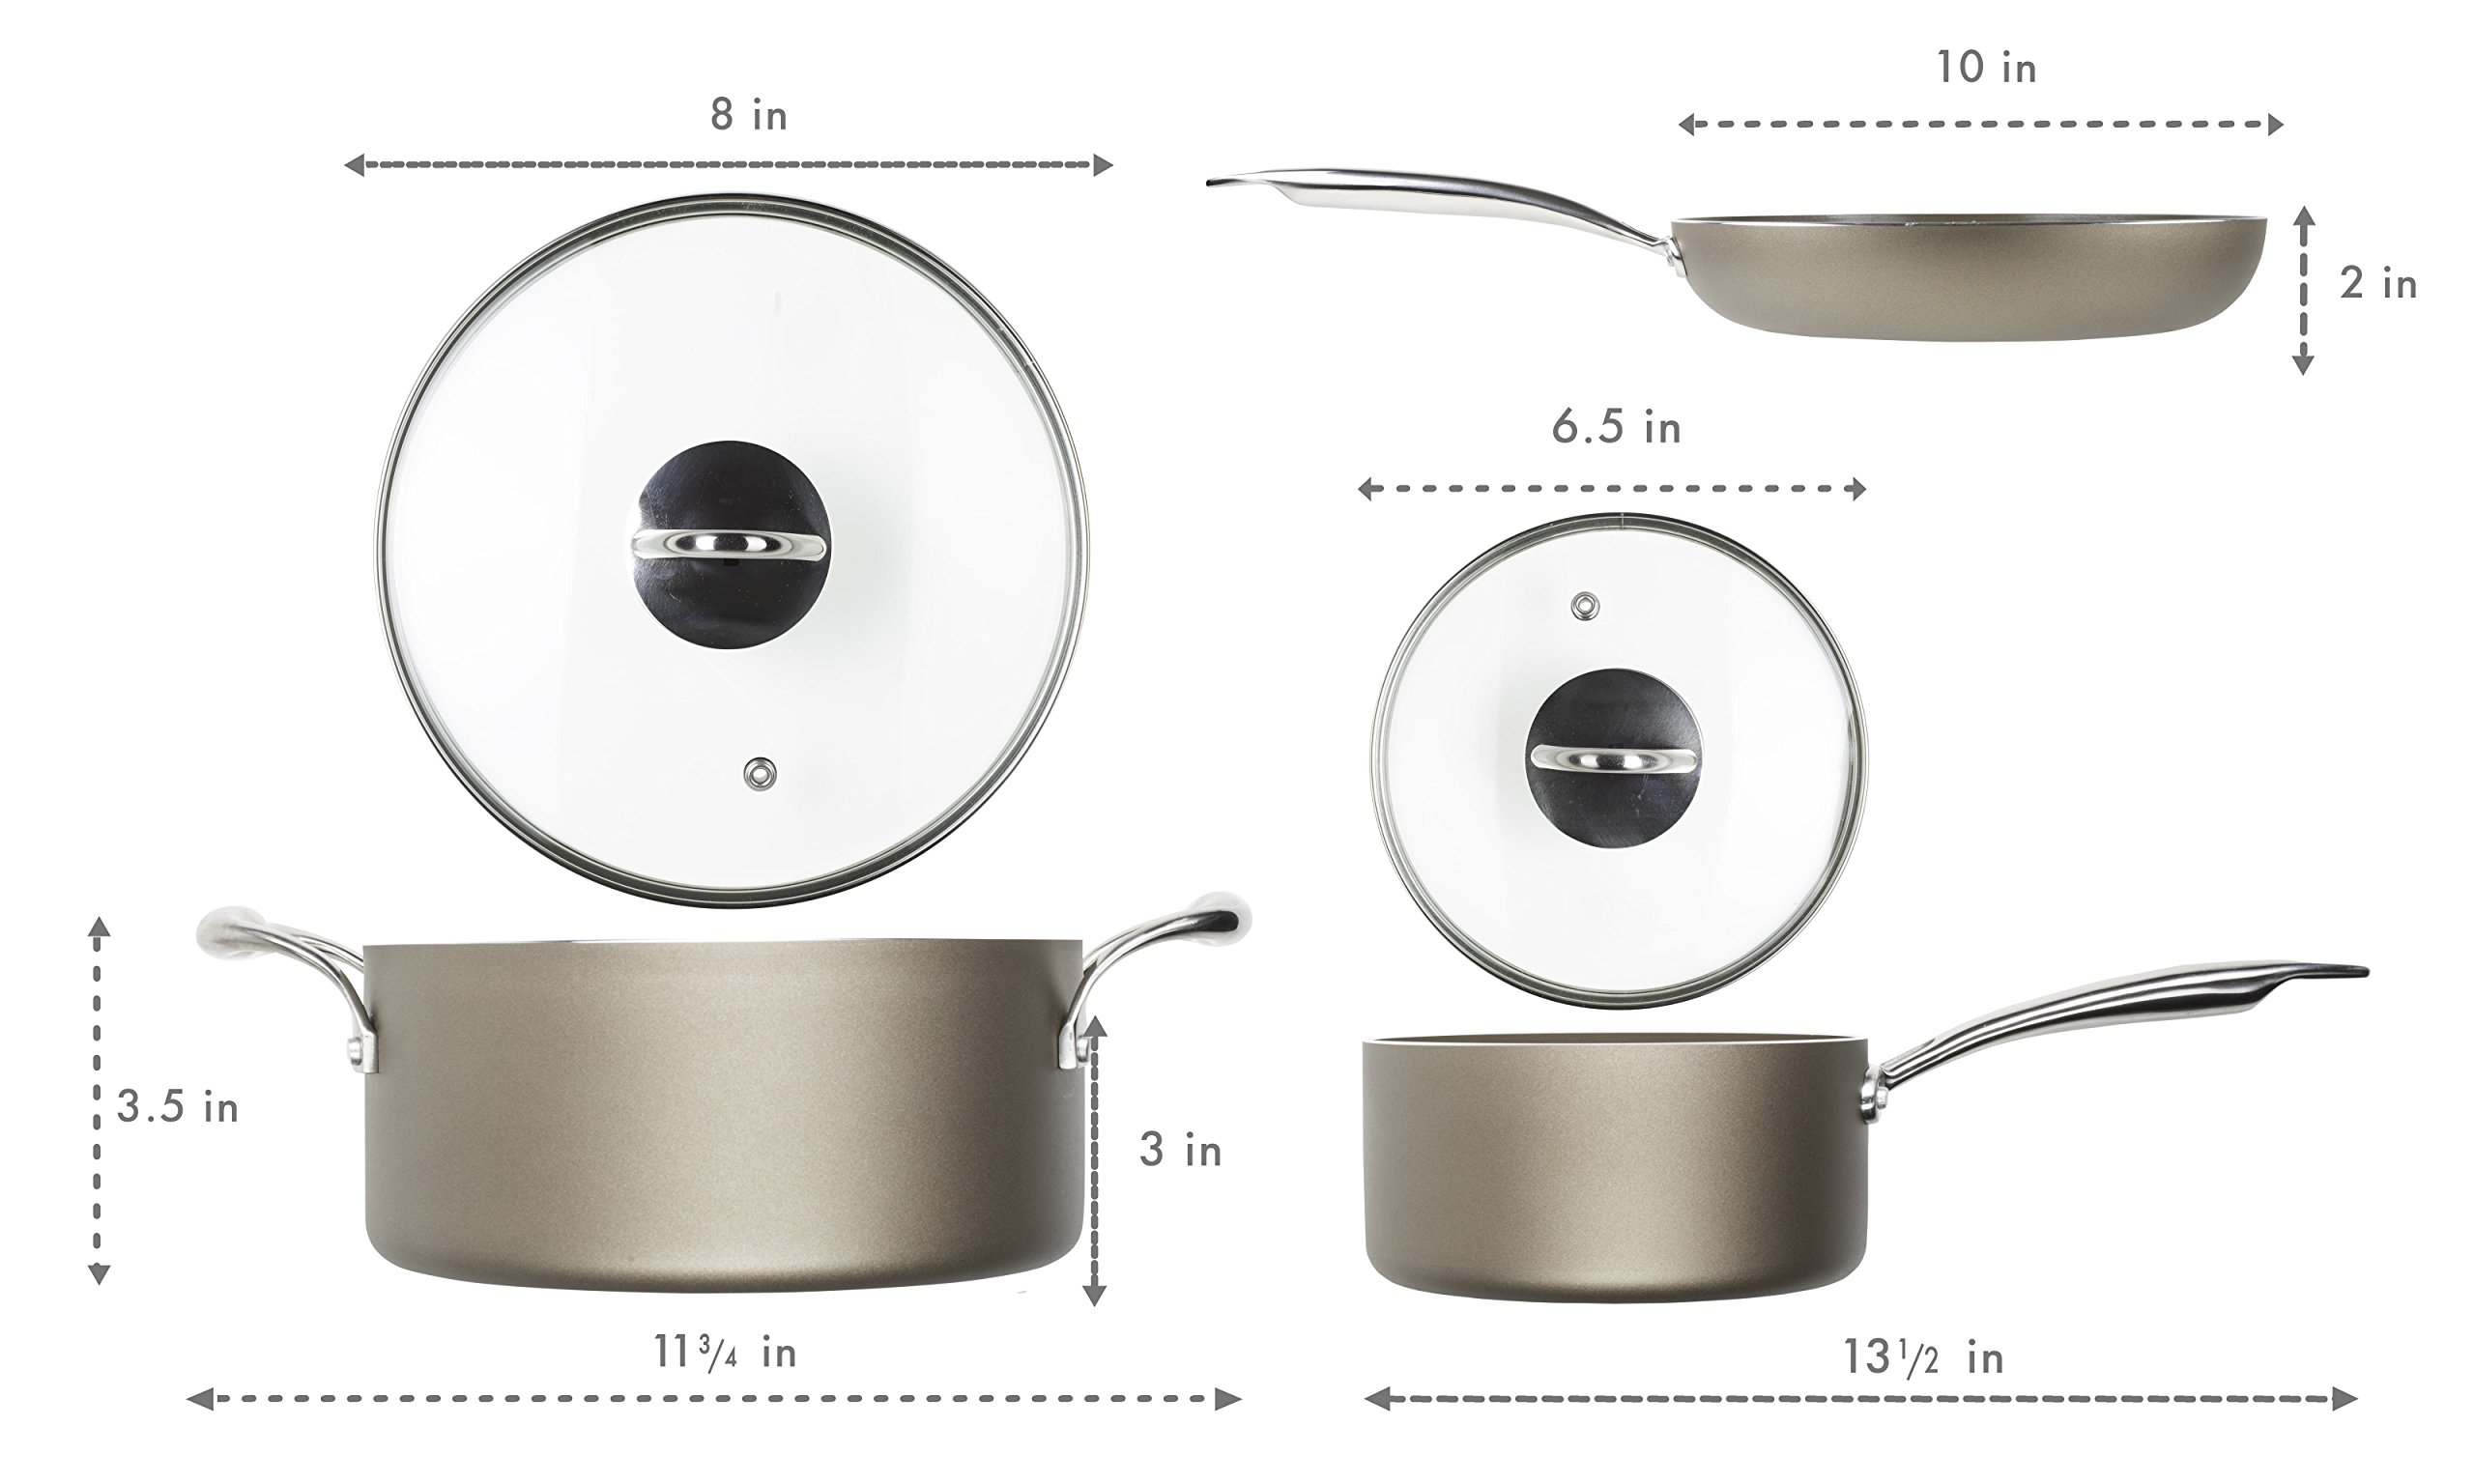 WaxonWare Hive Nonstick Cookware Set 5 PCS Pots and Pans Set (Frying Pan, Saucepan, Dutch Oven) - PTFE, PFOA and APEO Free Plus Induction & Oven Safe by WaxonWare (Image #6)